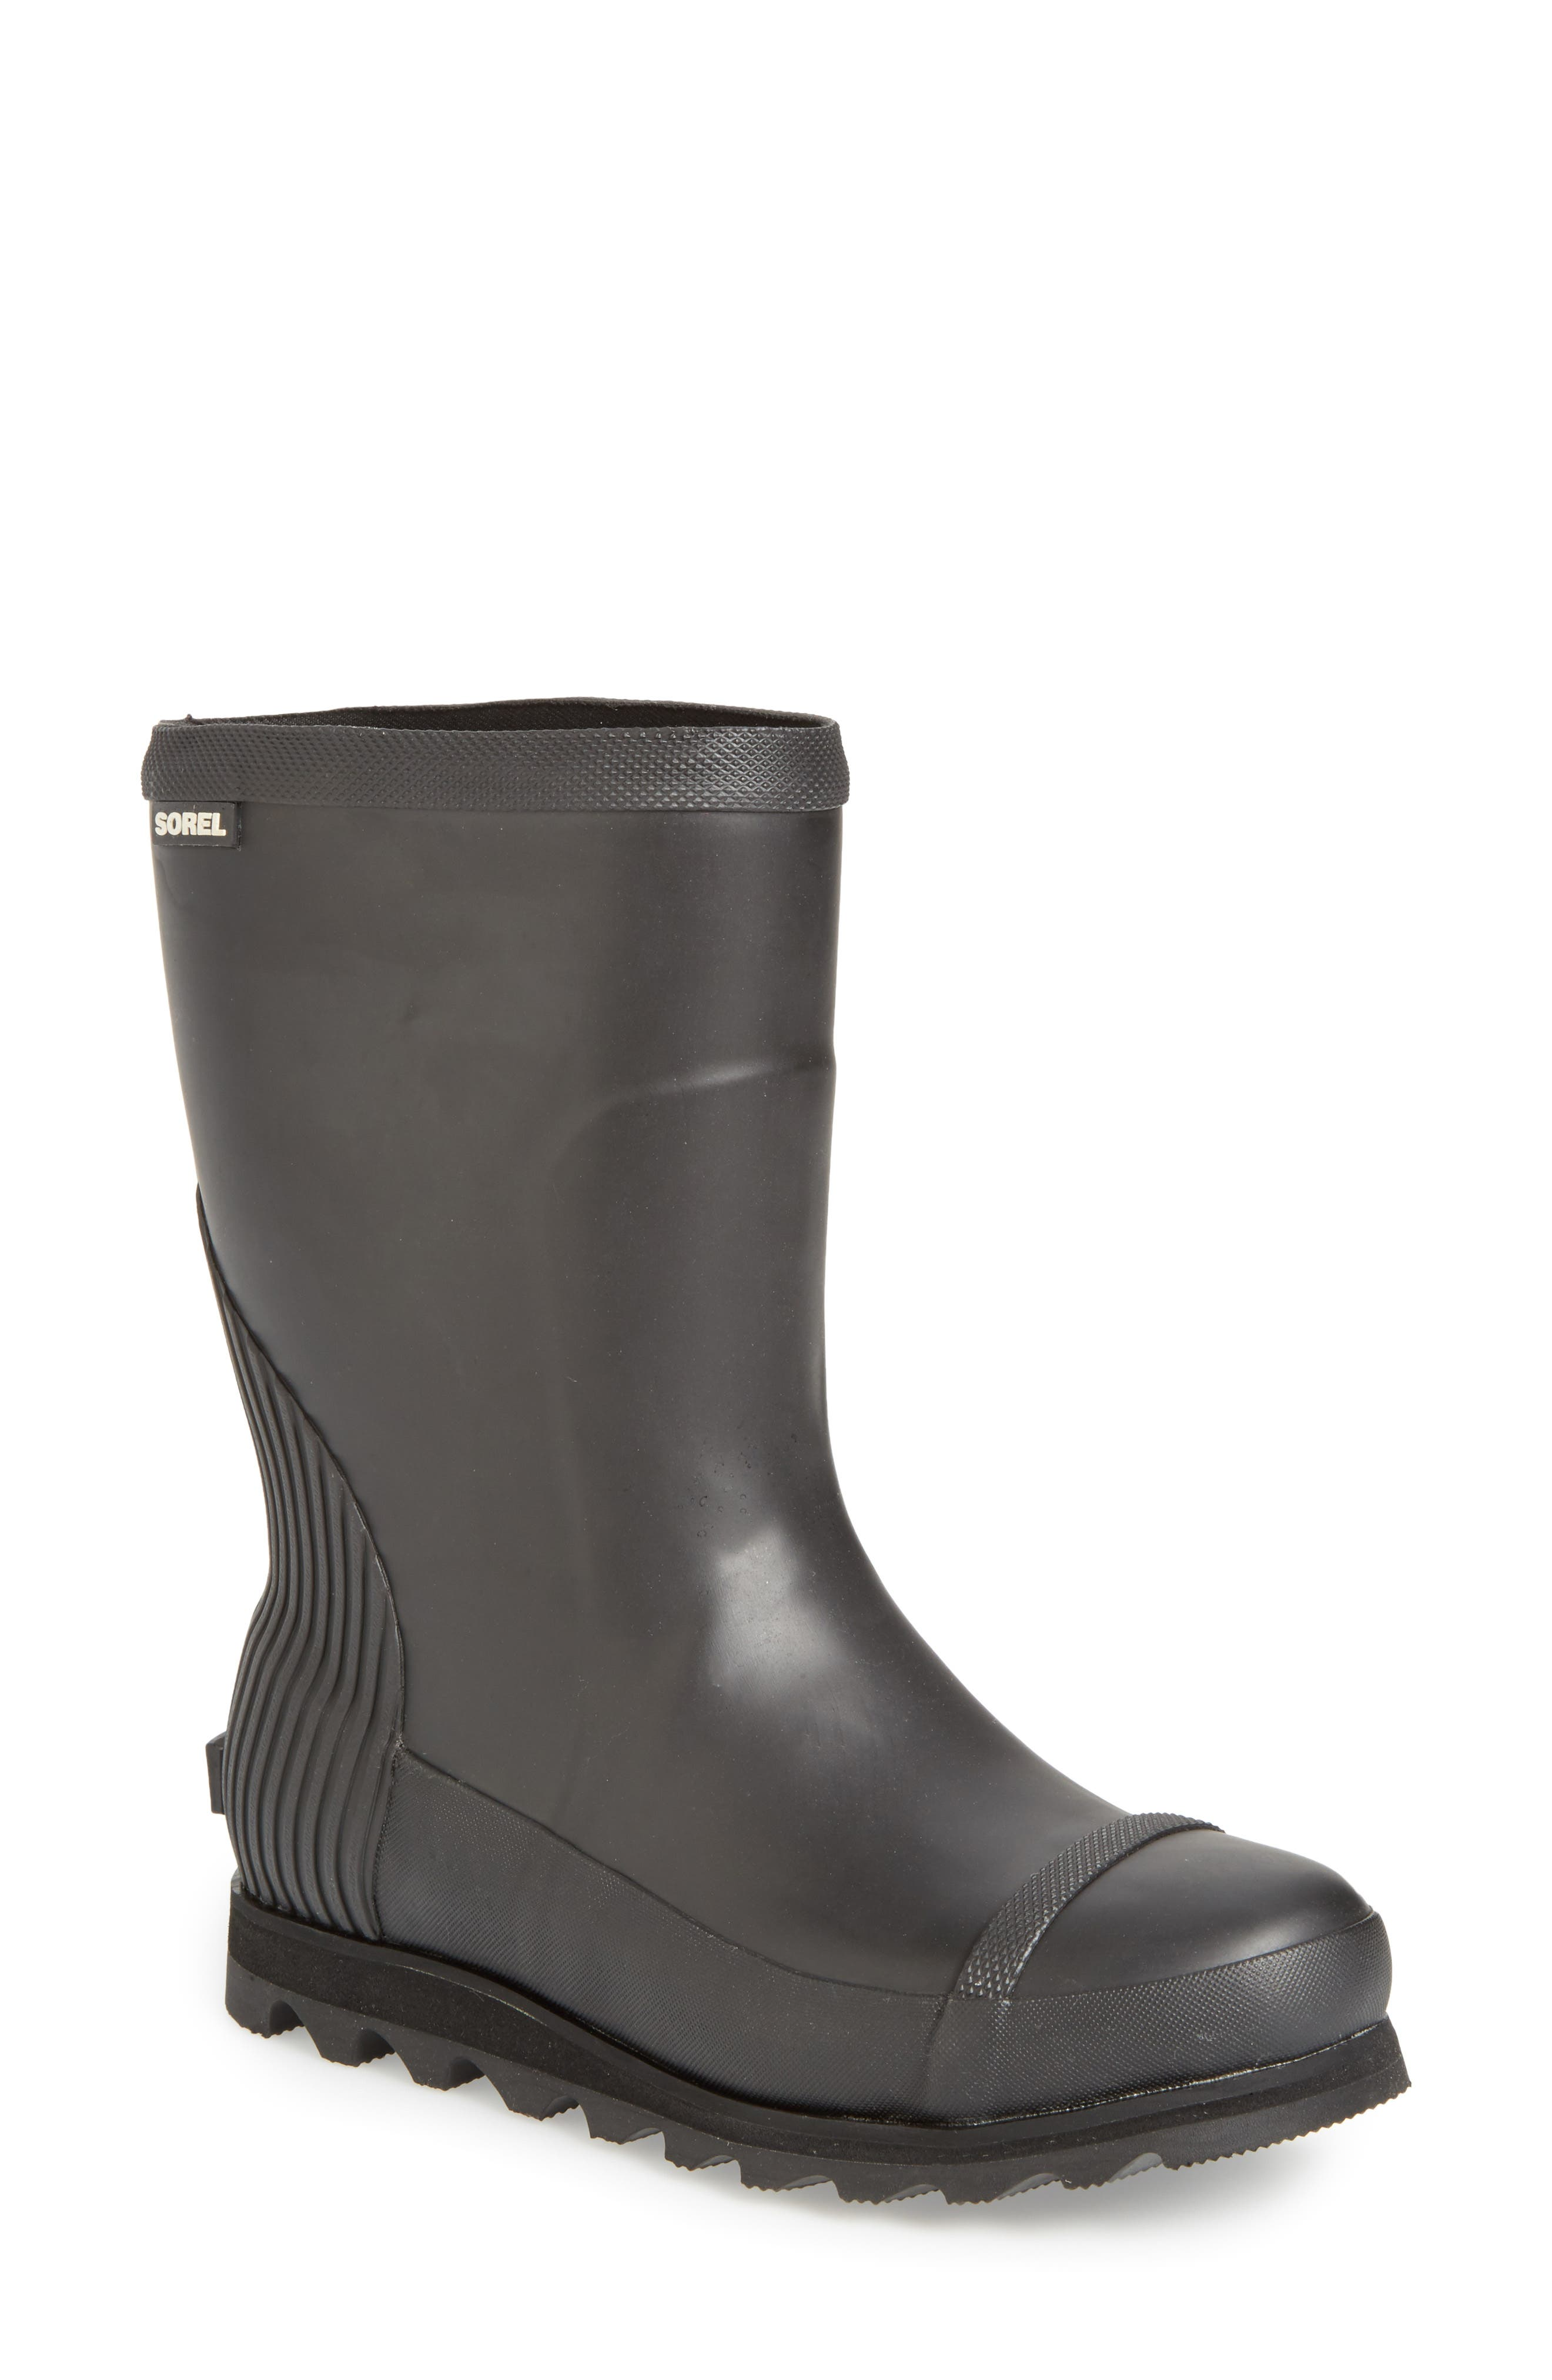 Joan Short Rain Boot,                             Main thumbnail 1, color,                             Black/ Sea Salt